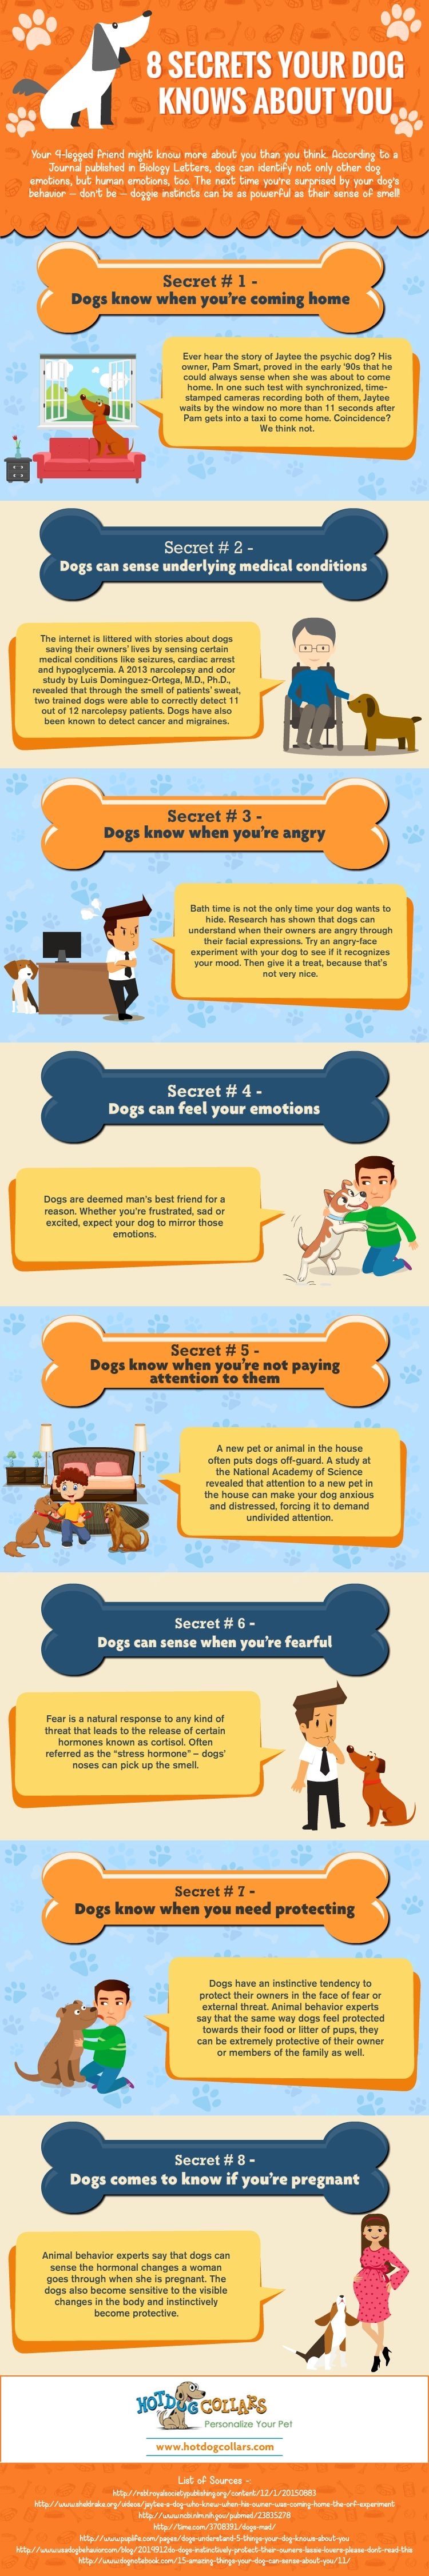 Secrets your dog knows